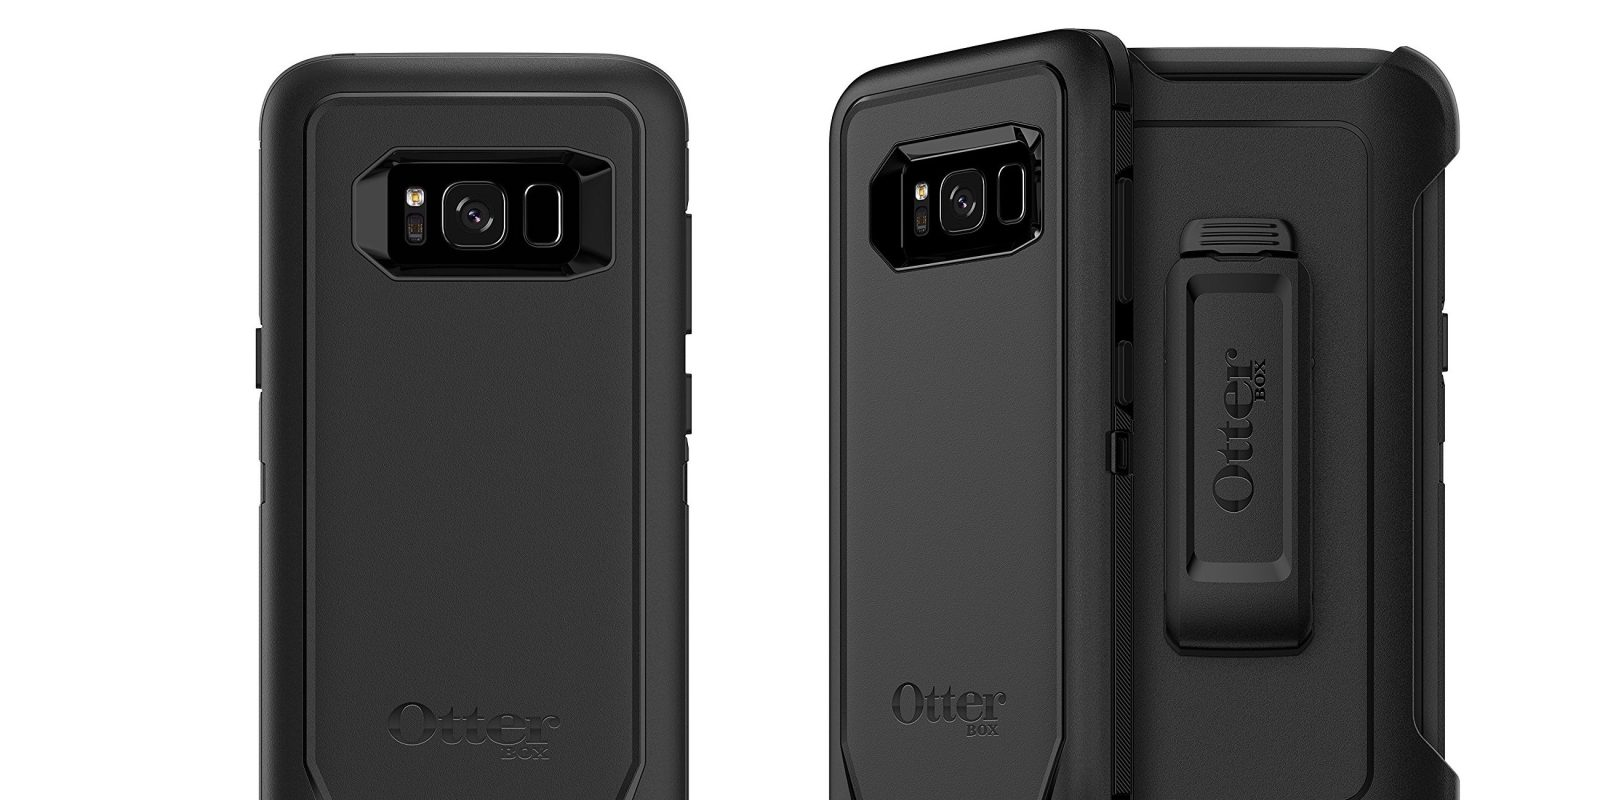 low priced e59ff 8c1c1 OtterBox Defender Series Case for Samsung Galaxy S8 hits Amazon low ...